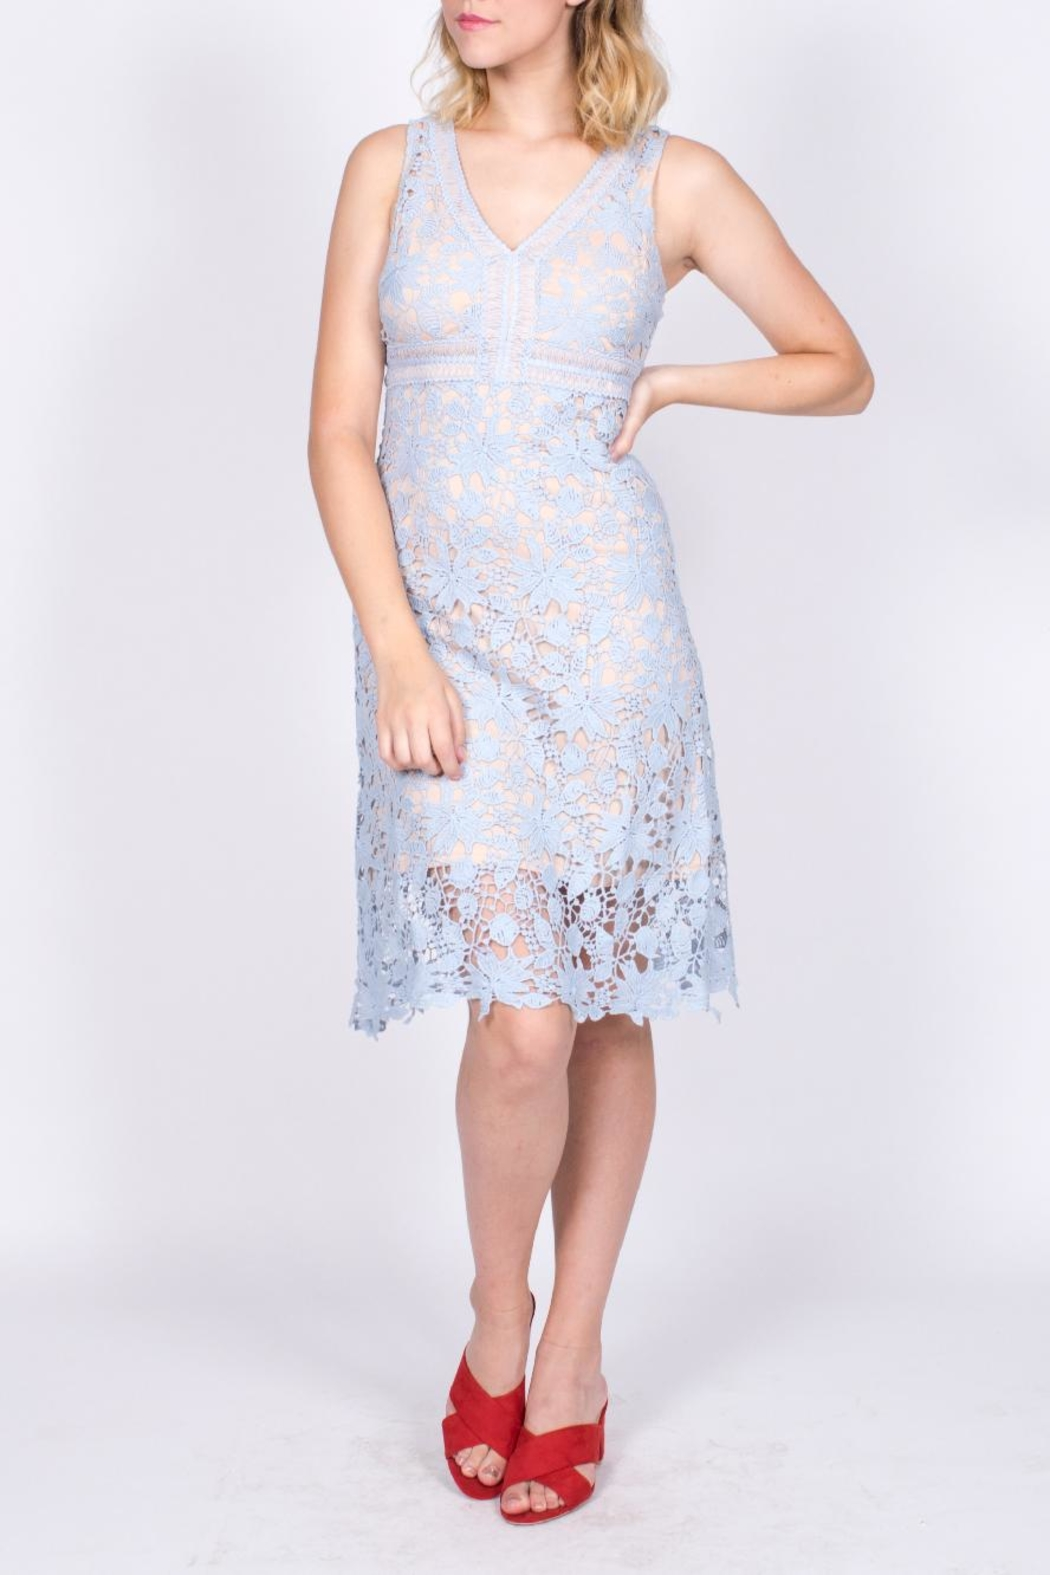 Mai Tai Blue Lace Dress - Main Image